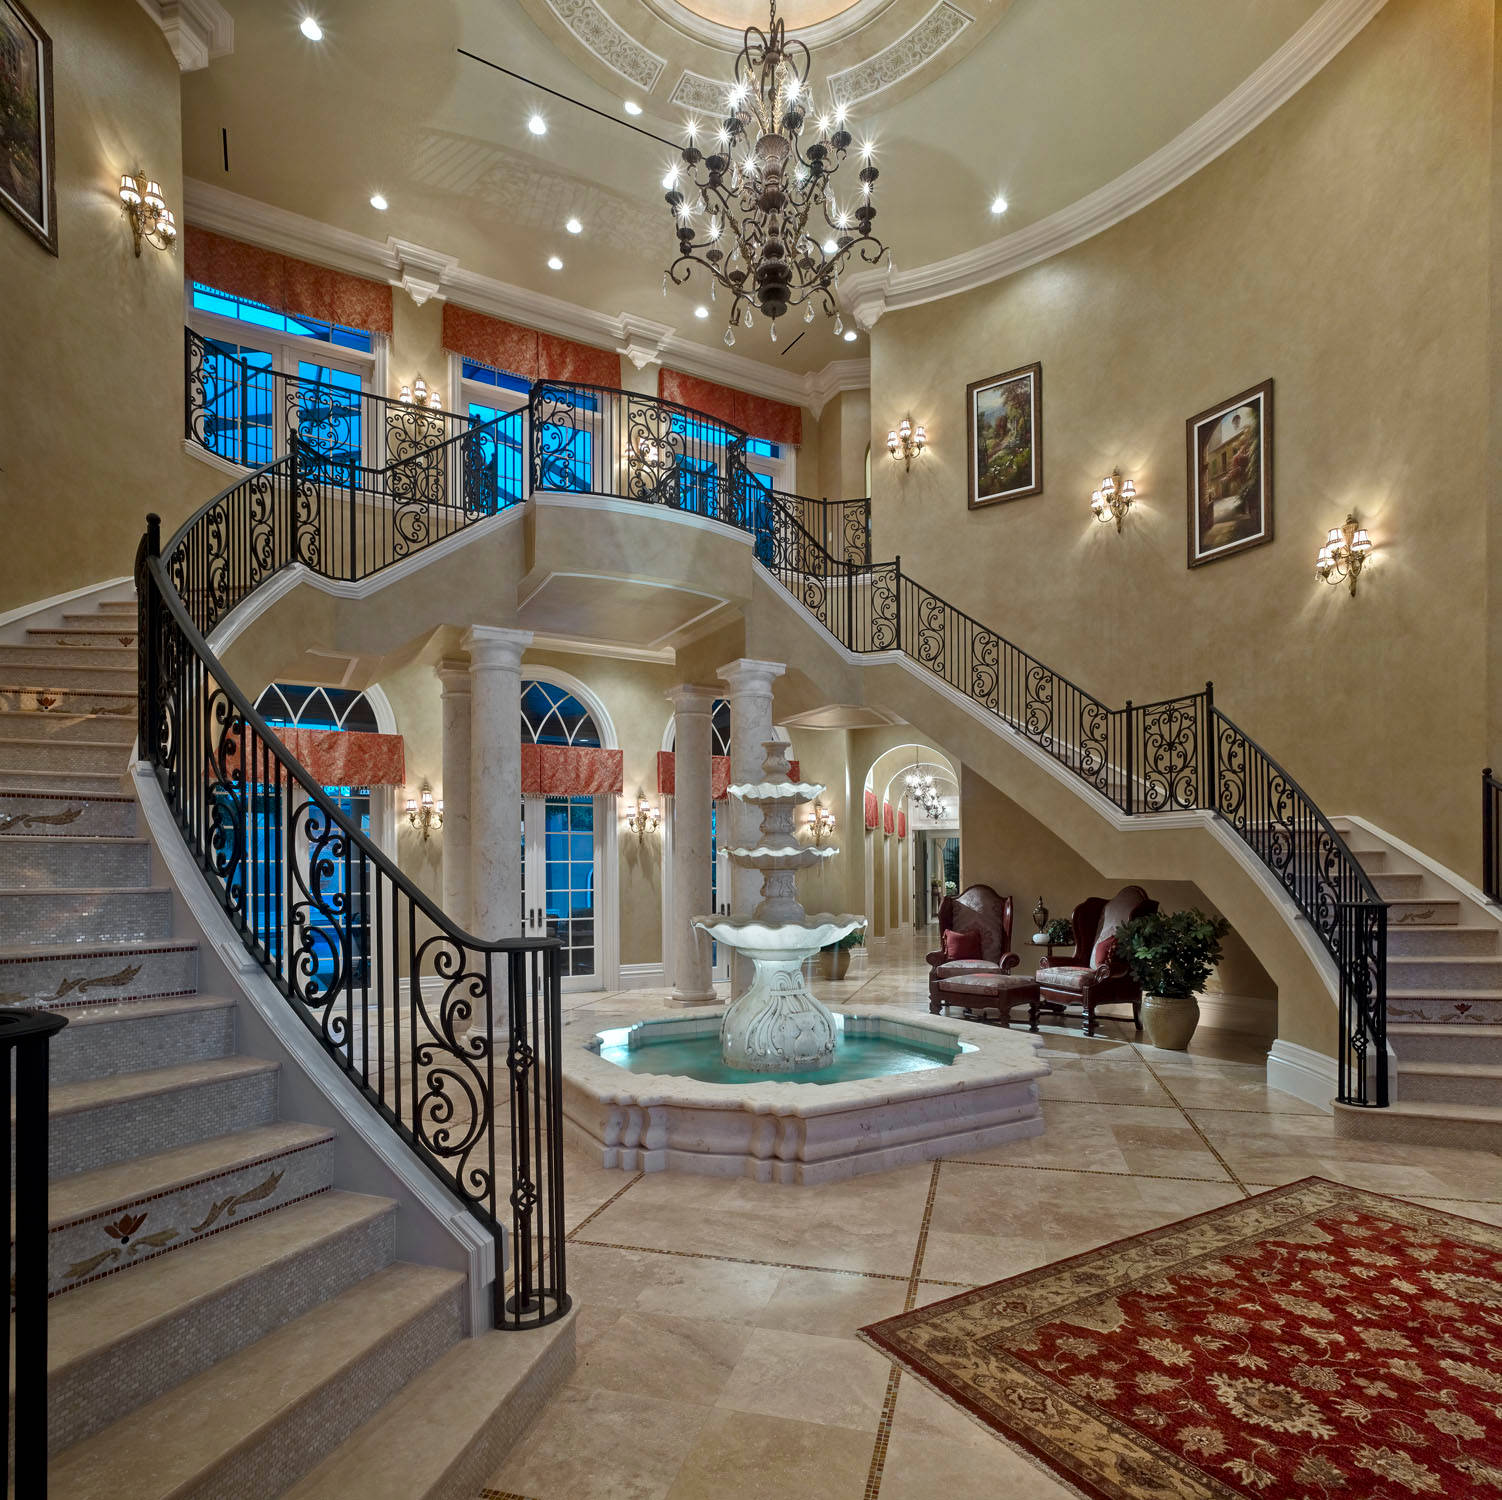 indoor-fountain-marble-grand-staircase-fancy-luxury-home